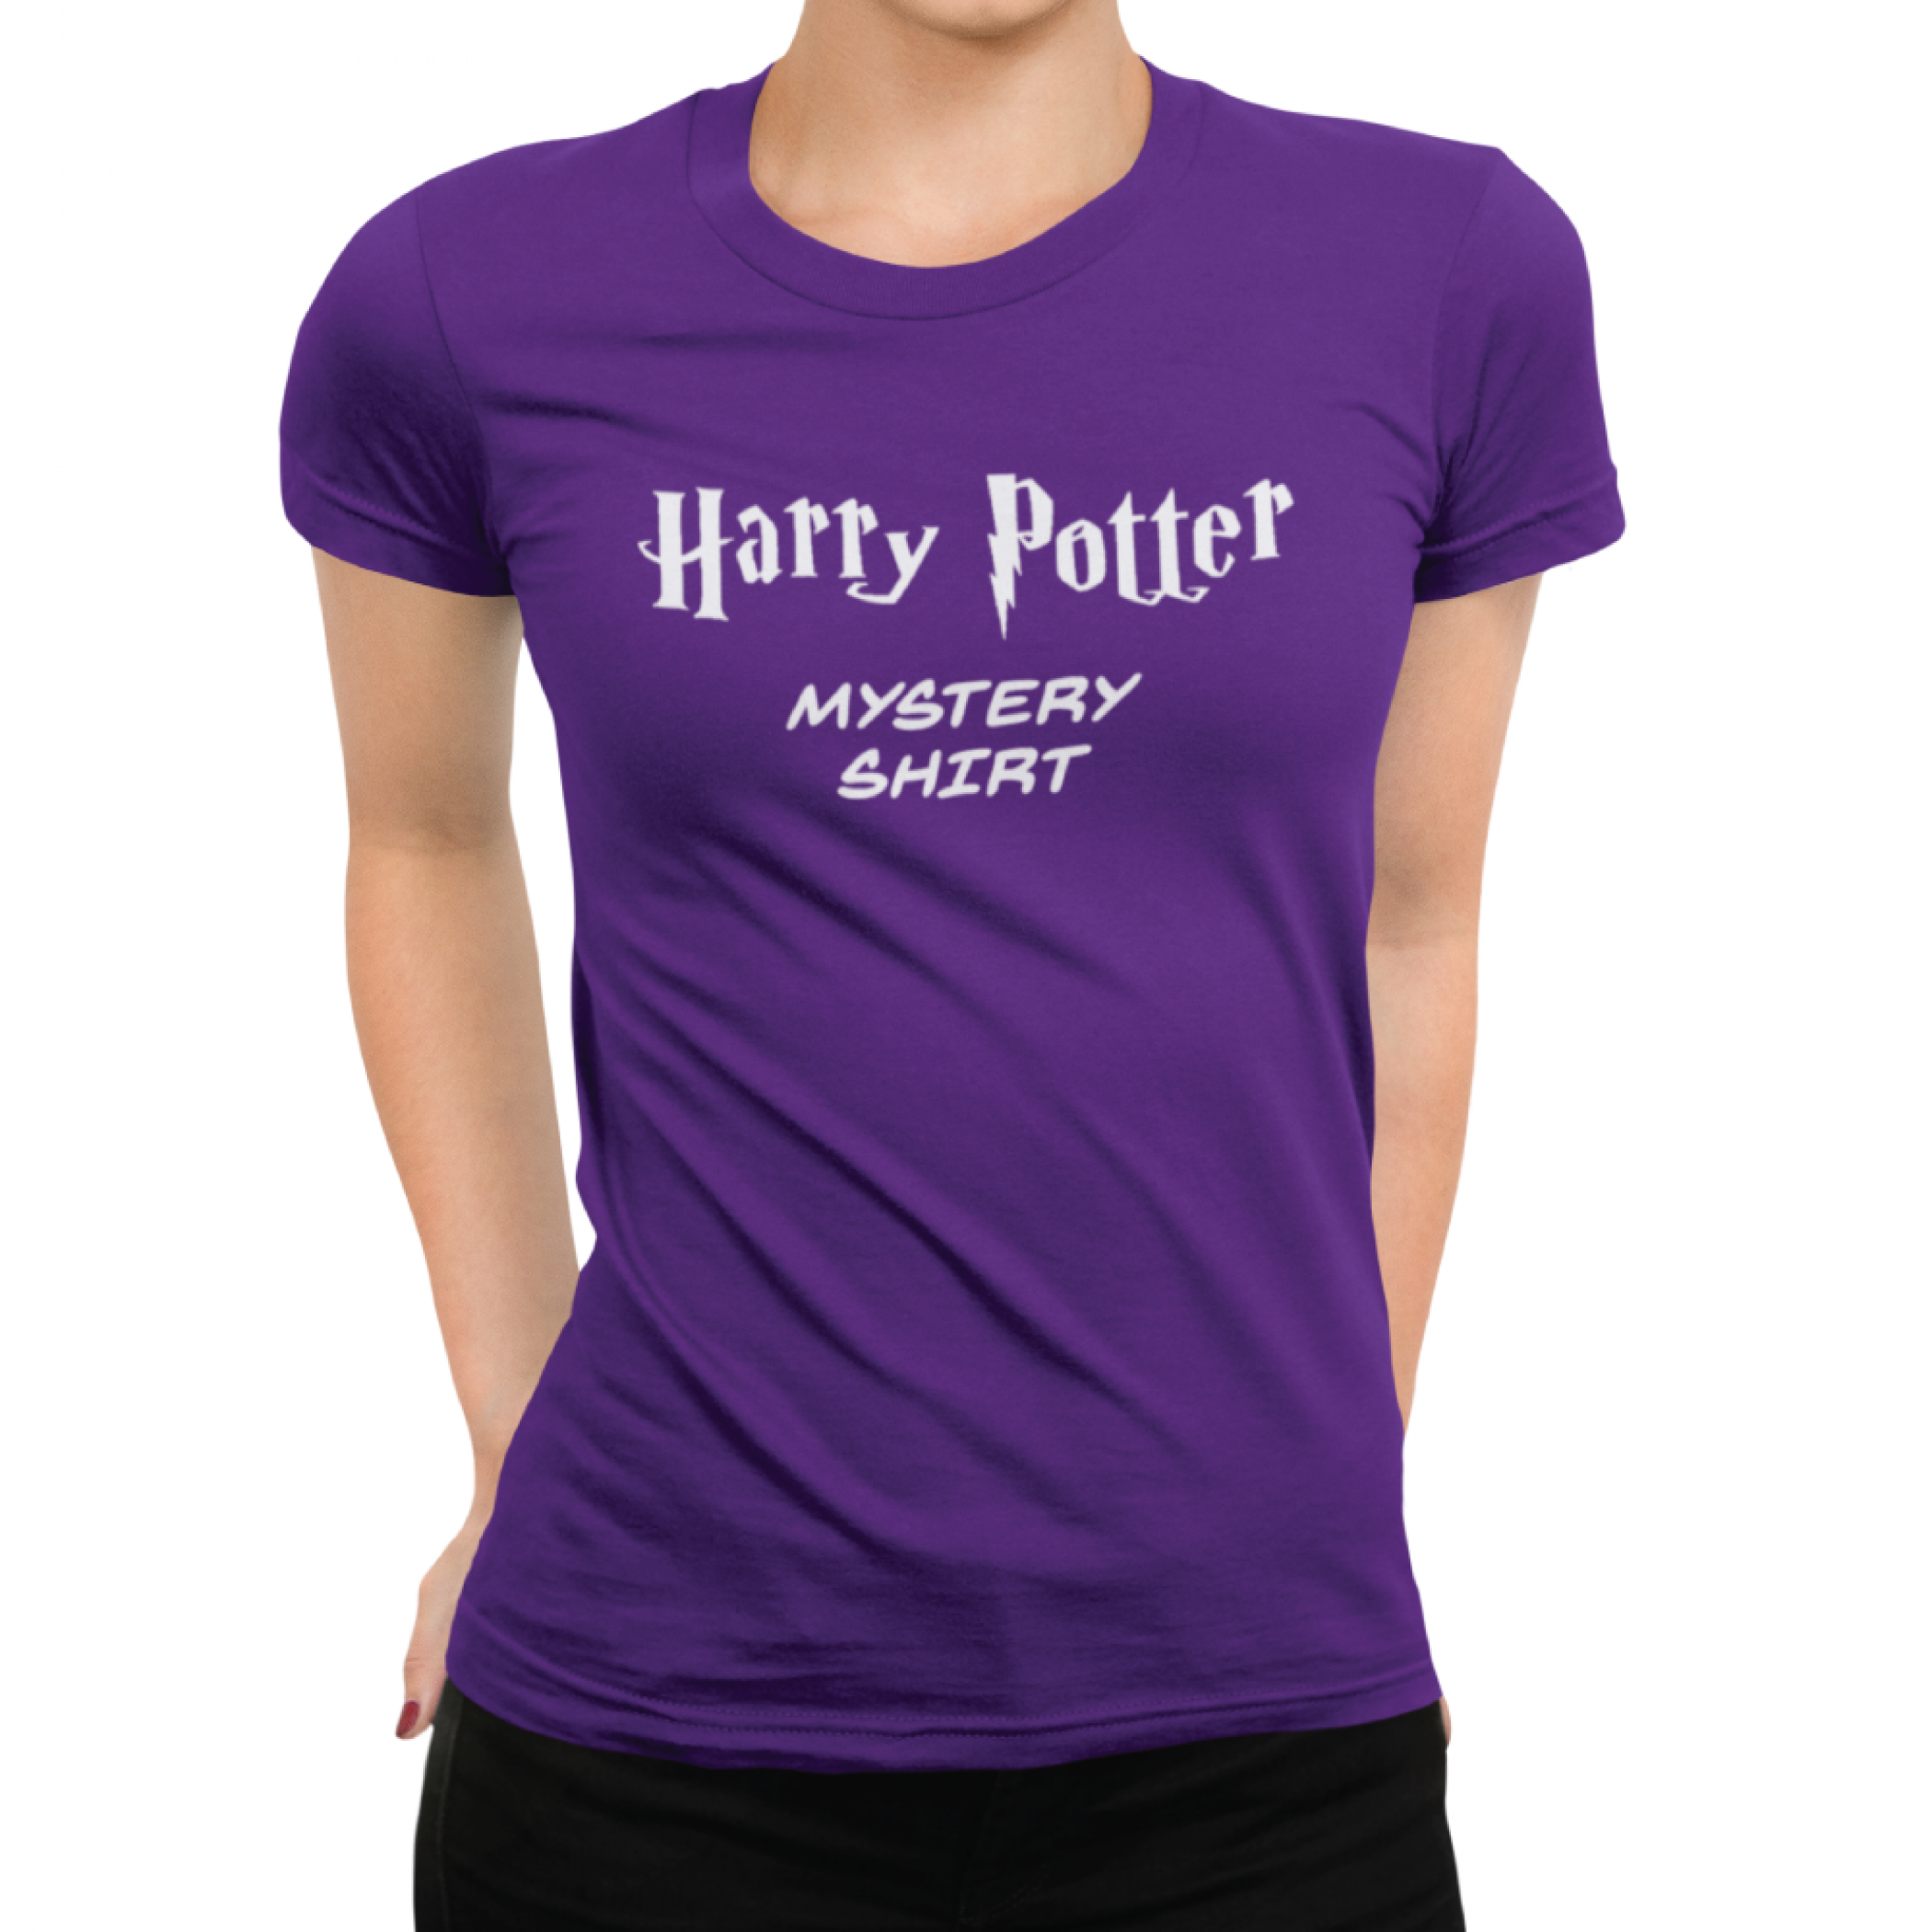 Harry Potter Women's Mystery T-Shirt